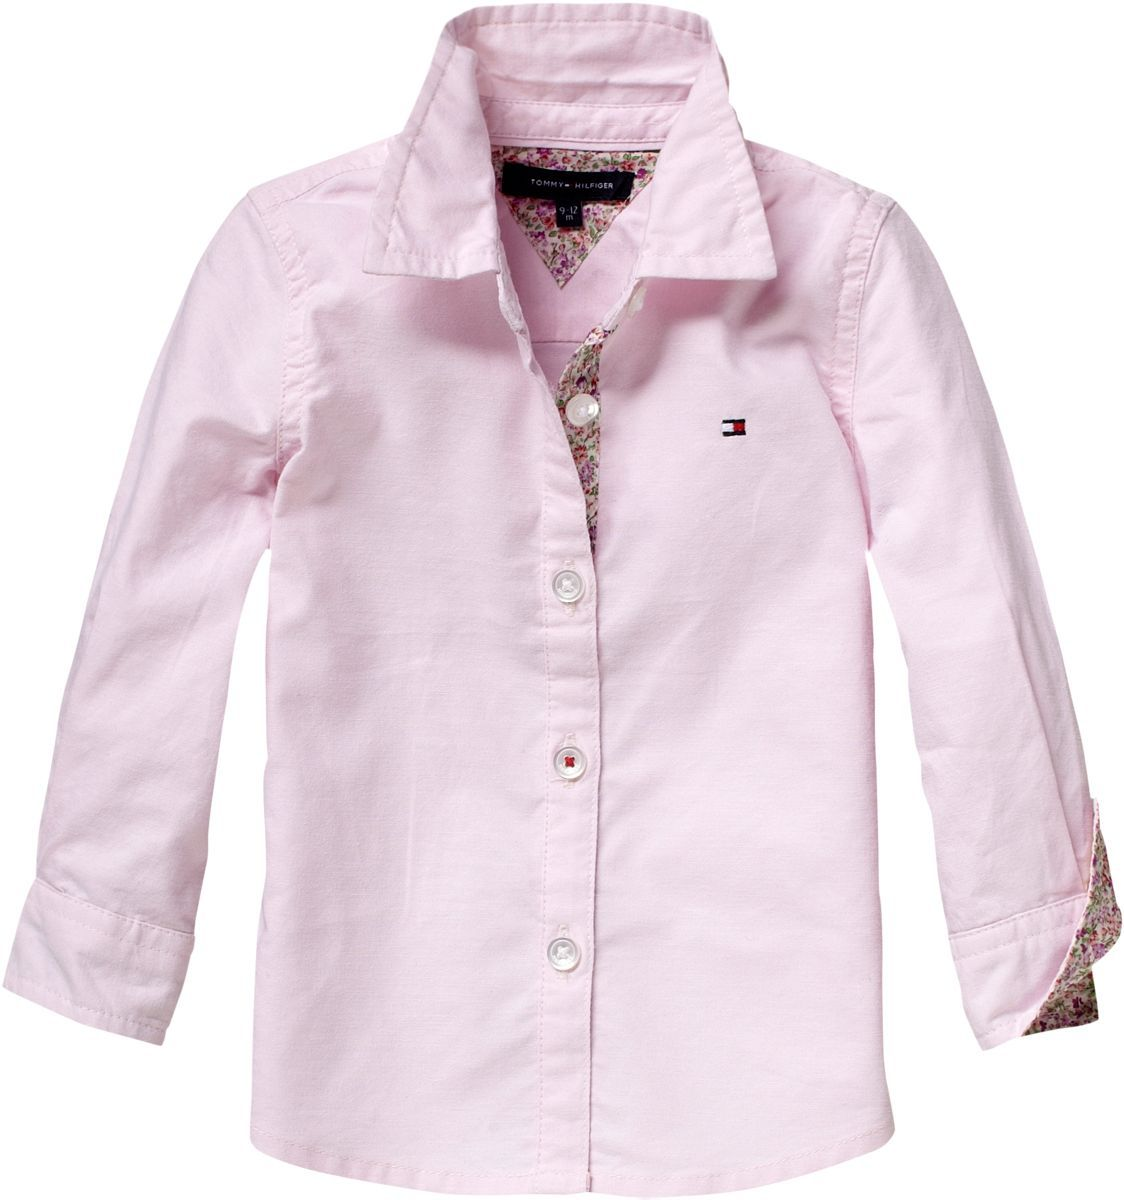 Toddler girl`s long sleeve shirt